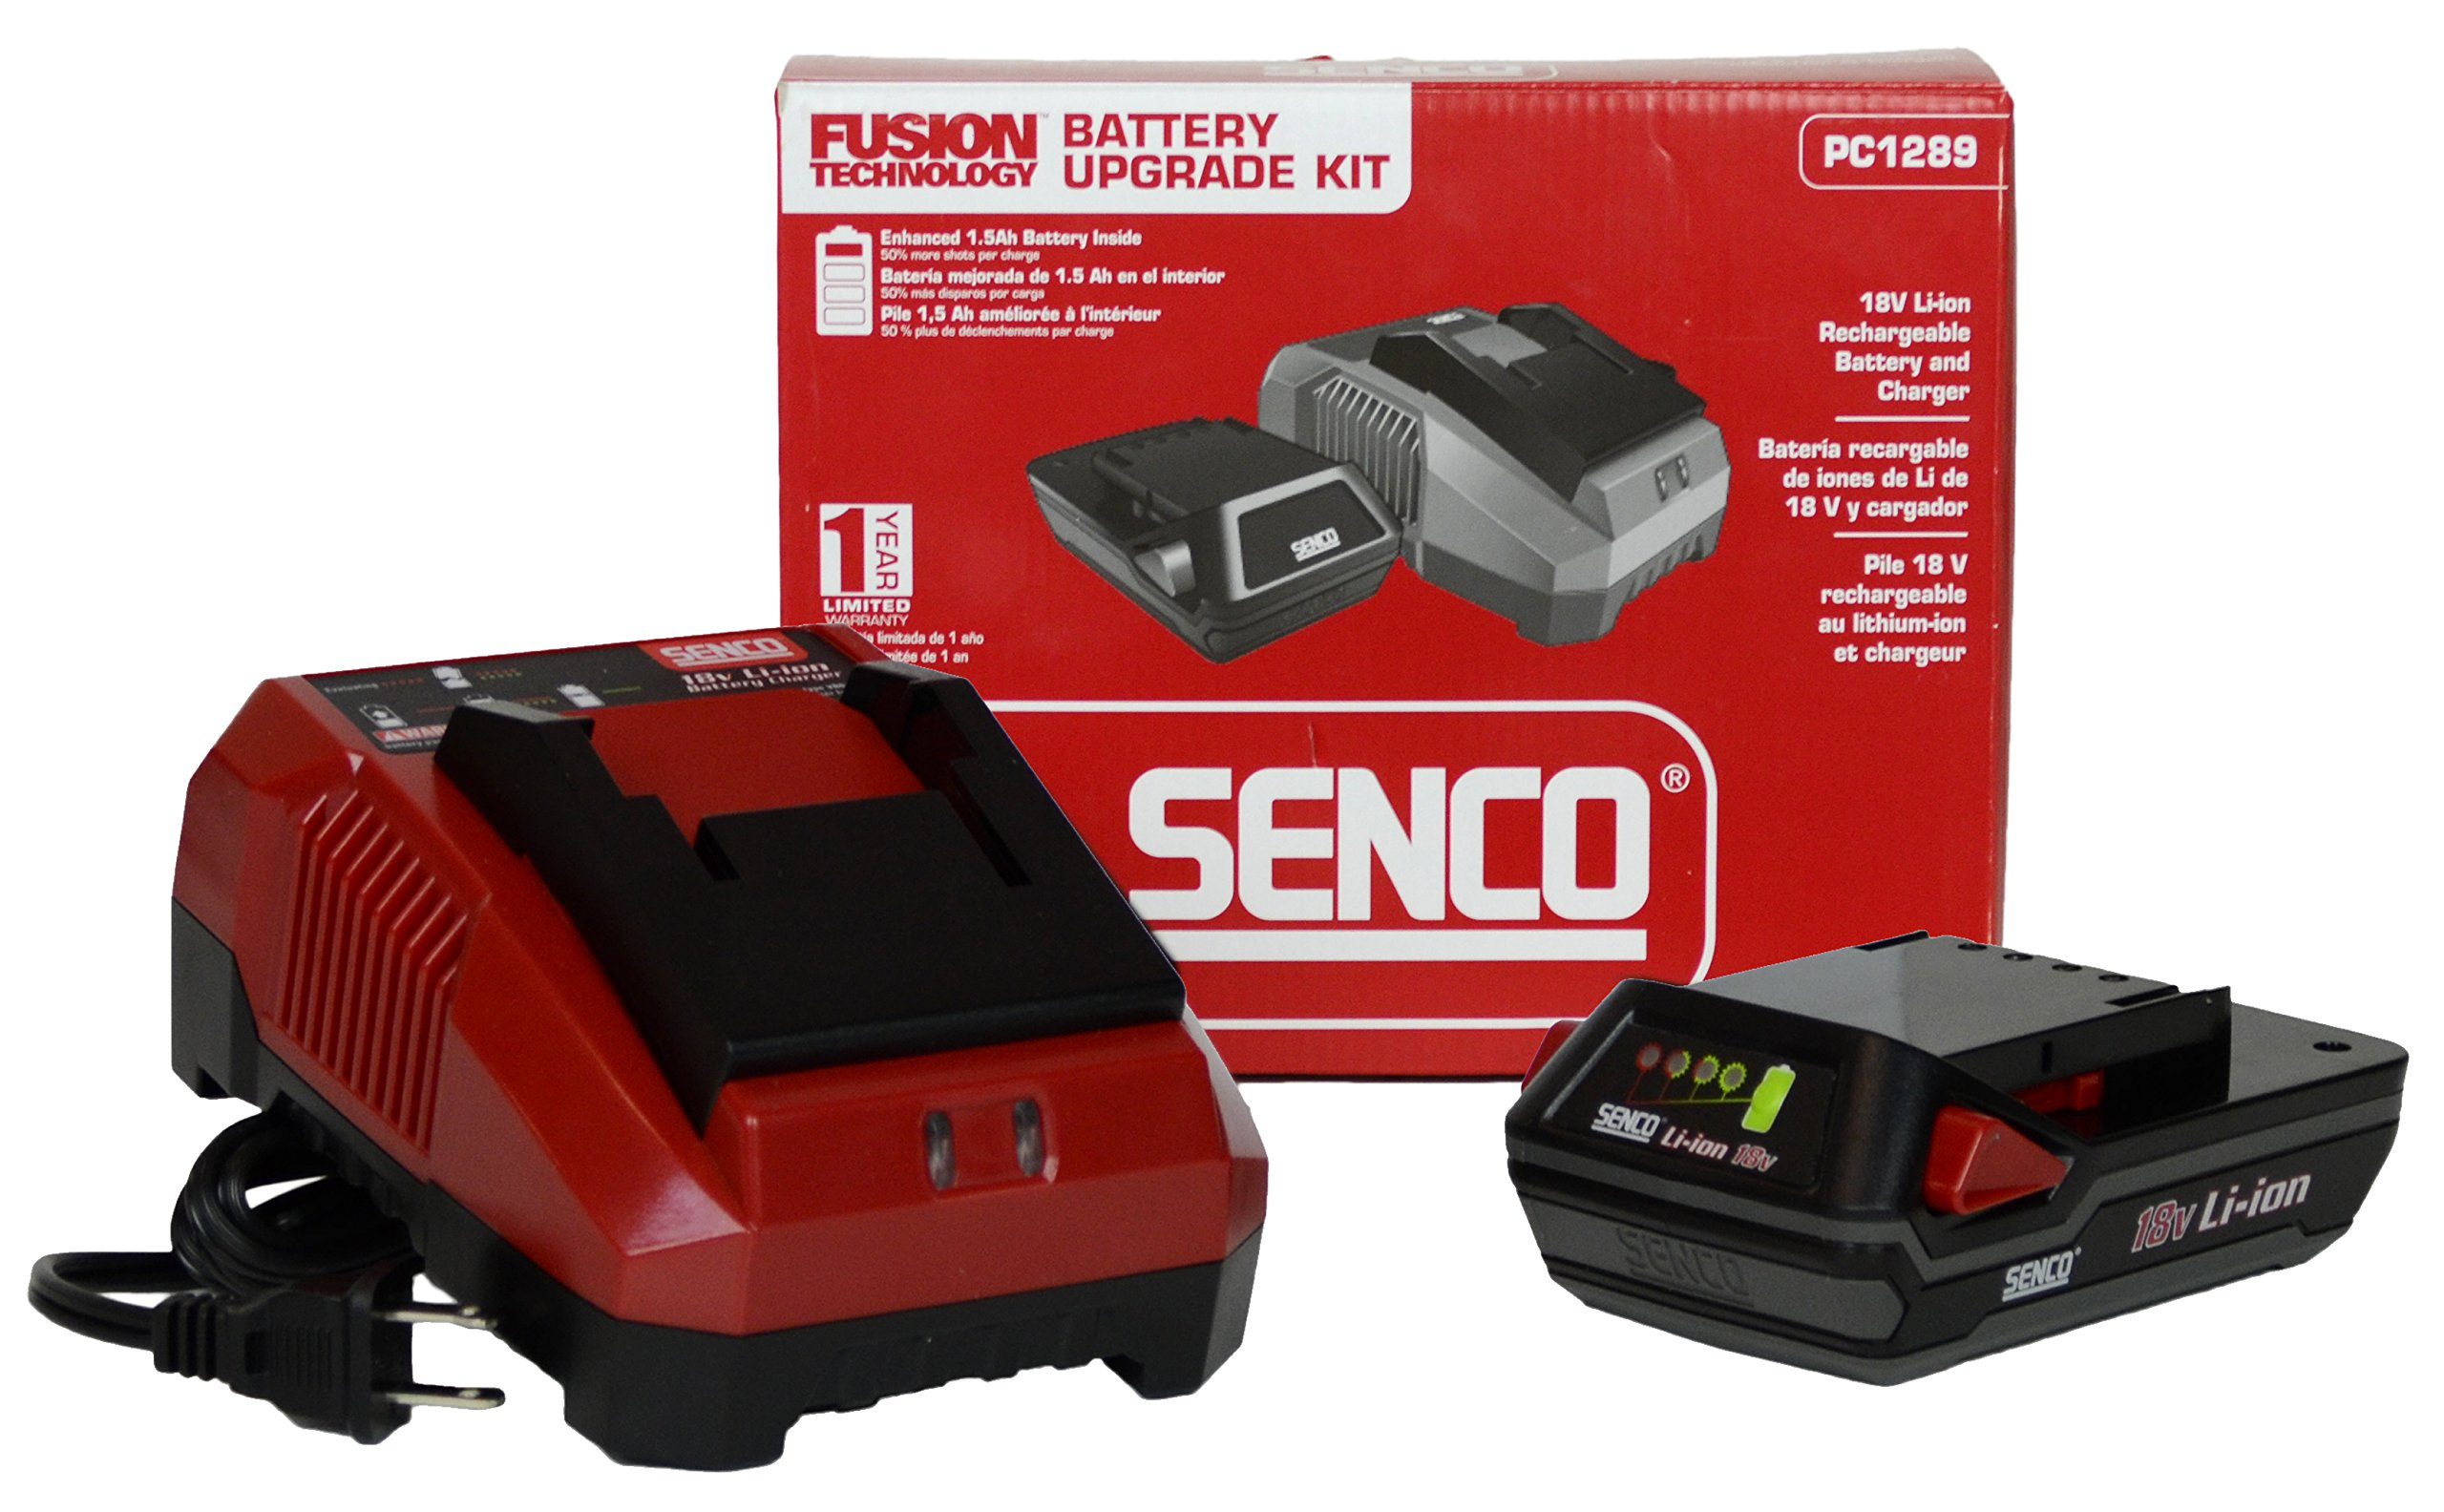 Senco Fusion PC1289 18v Li-Ion 1.5ah Battery and Charger Upgrade Kit